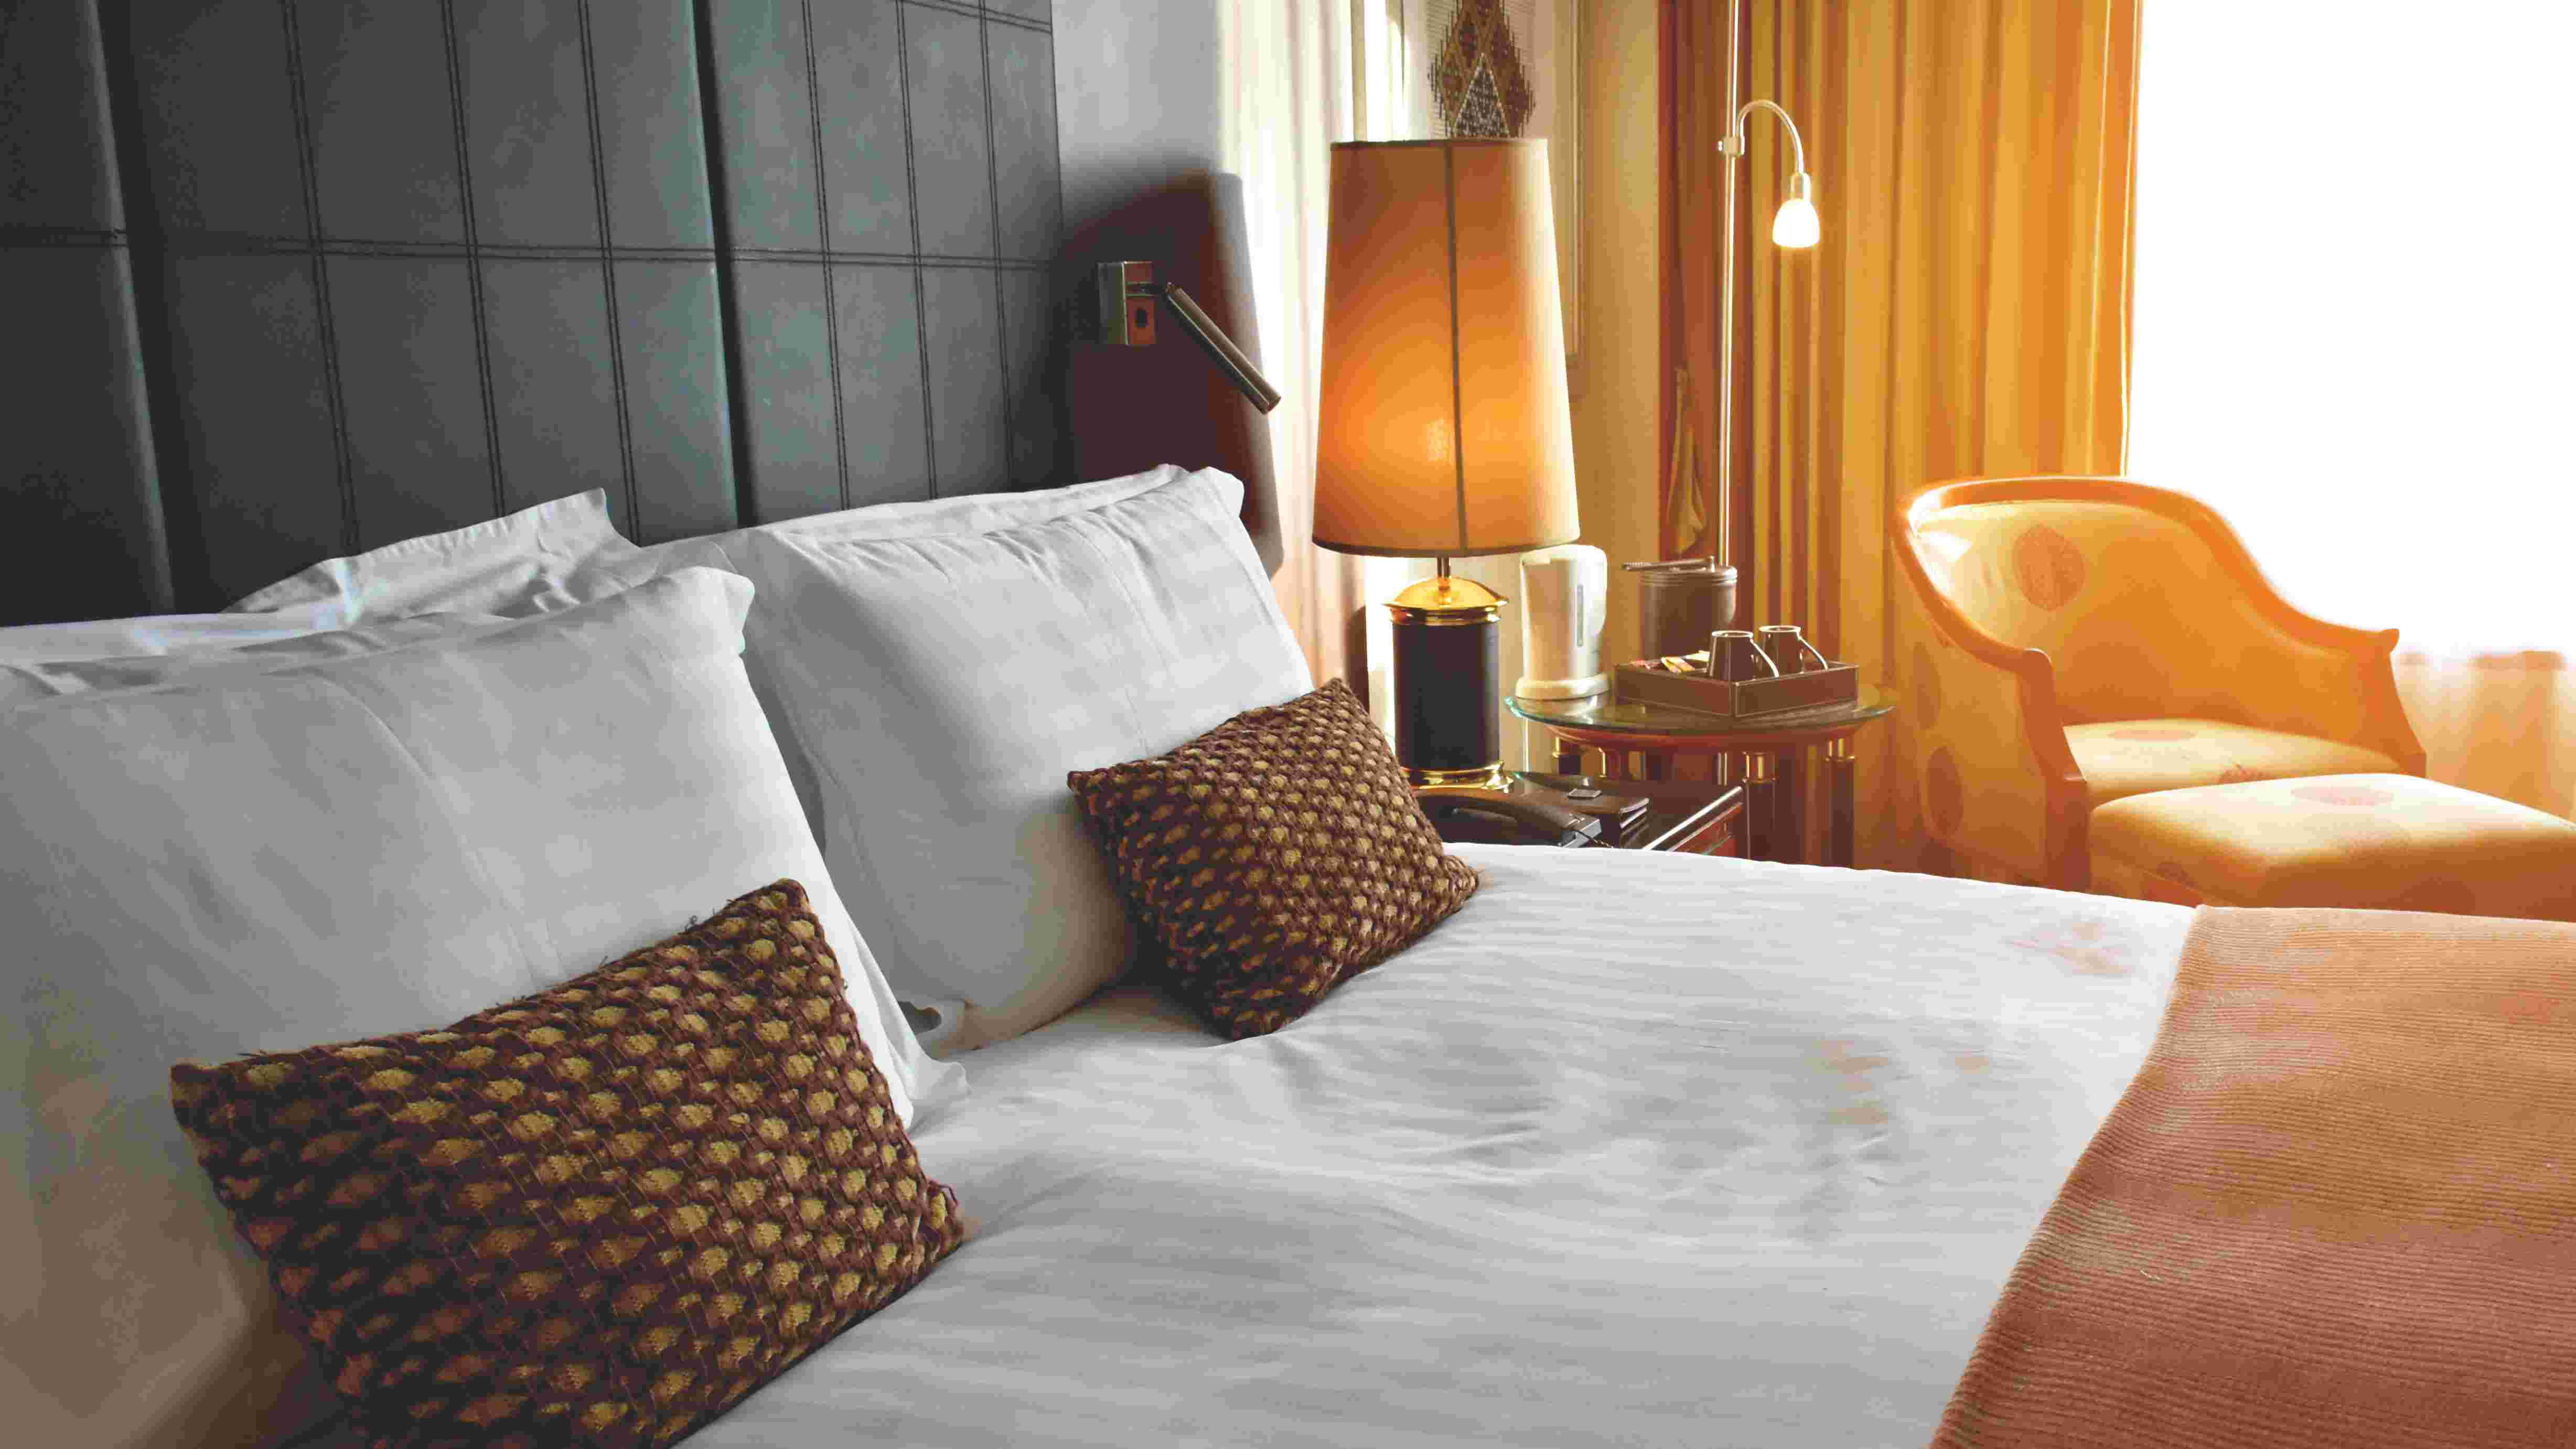 What you must check for in every hotel room